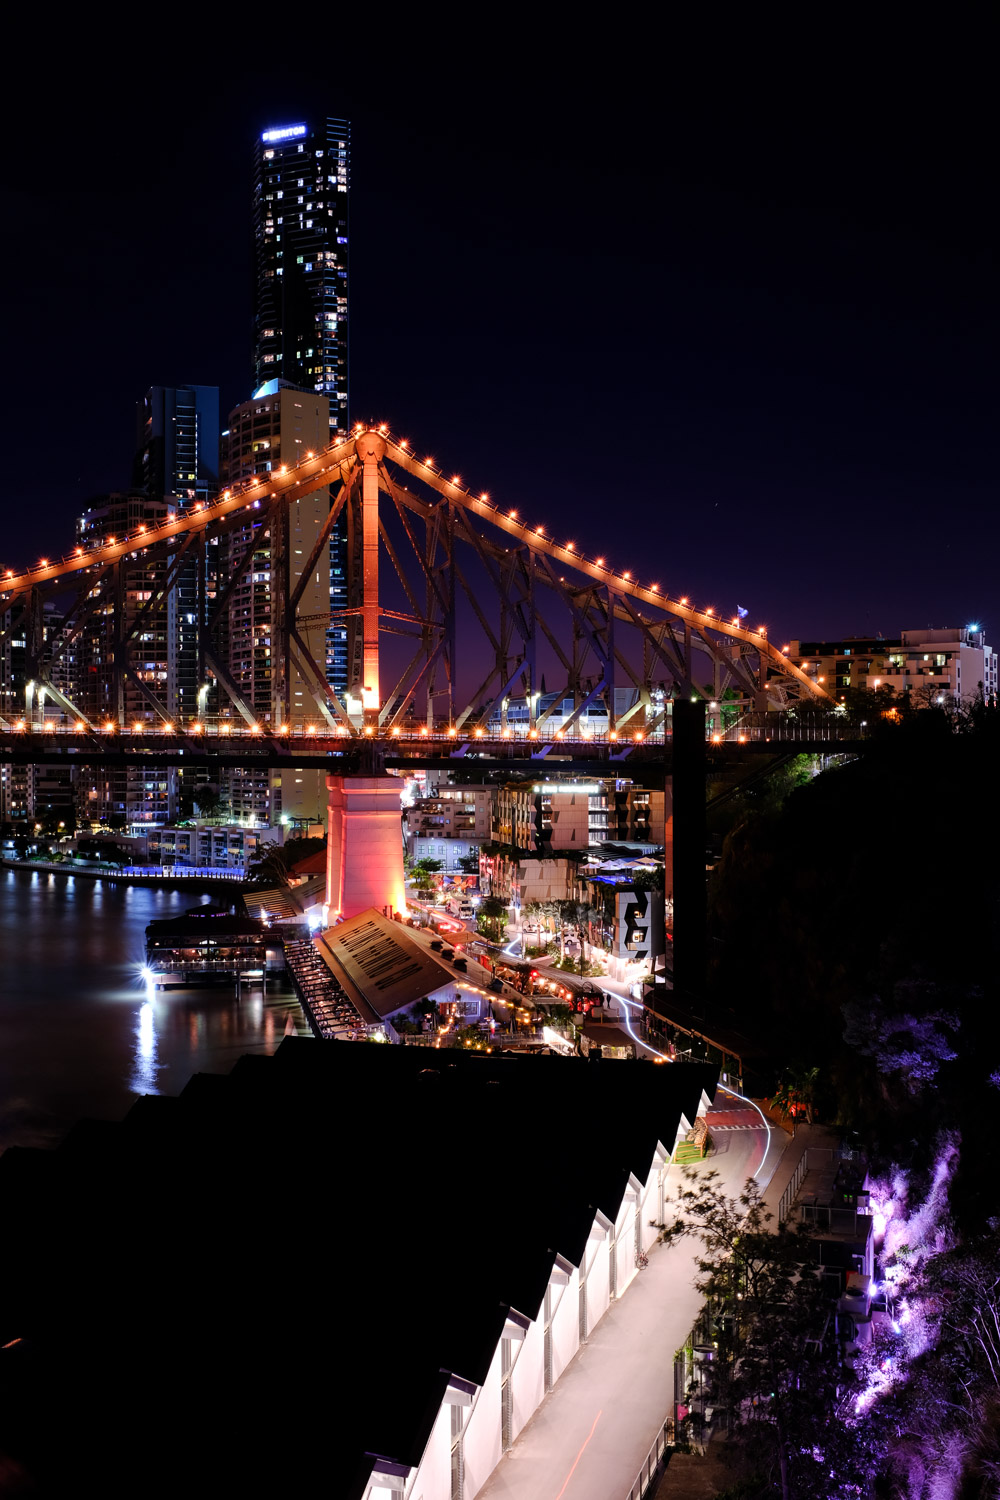 Story Bridge and Howard Smith Wharves at night (using the NiSi Natural Light filter)